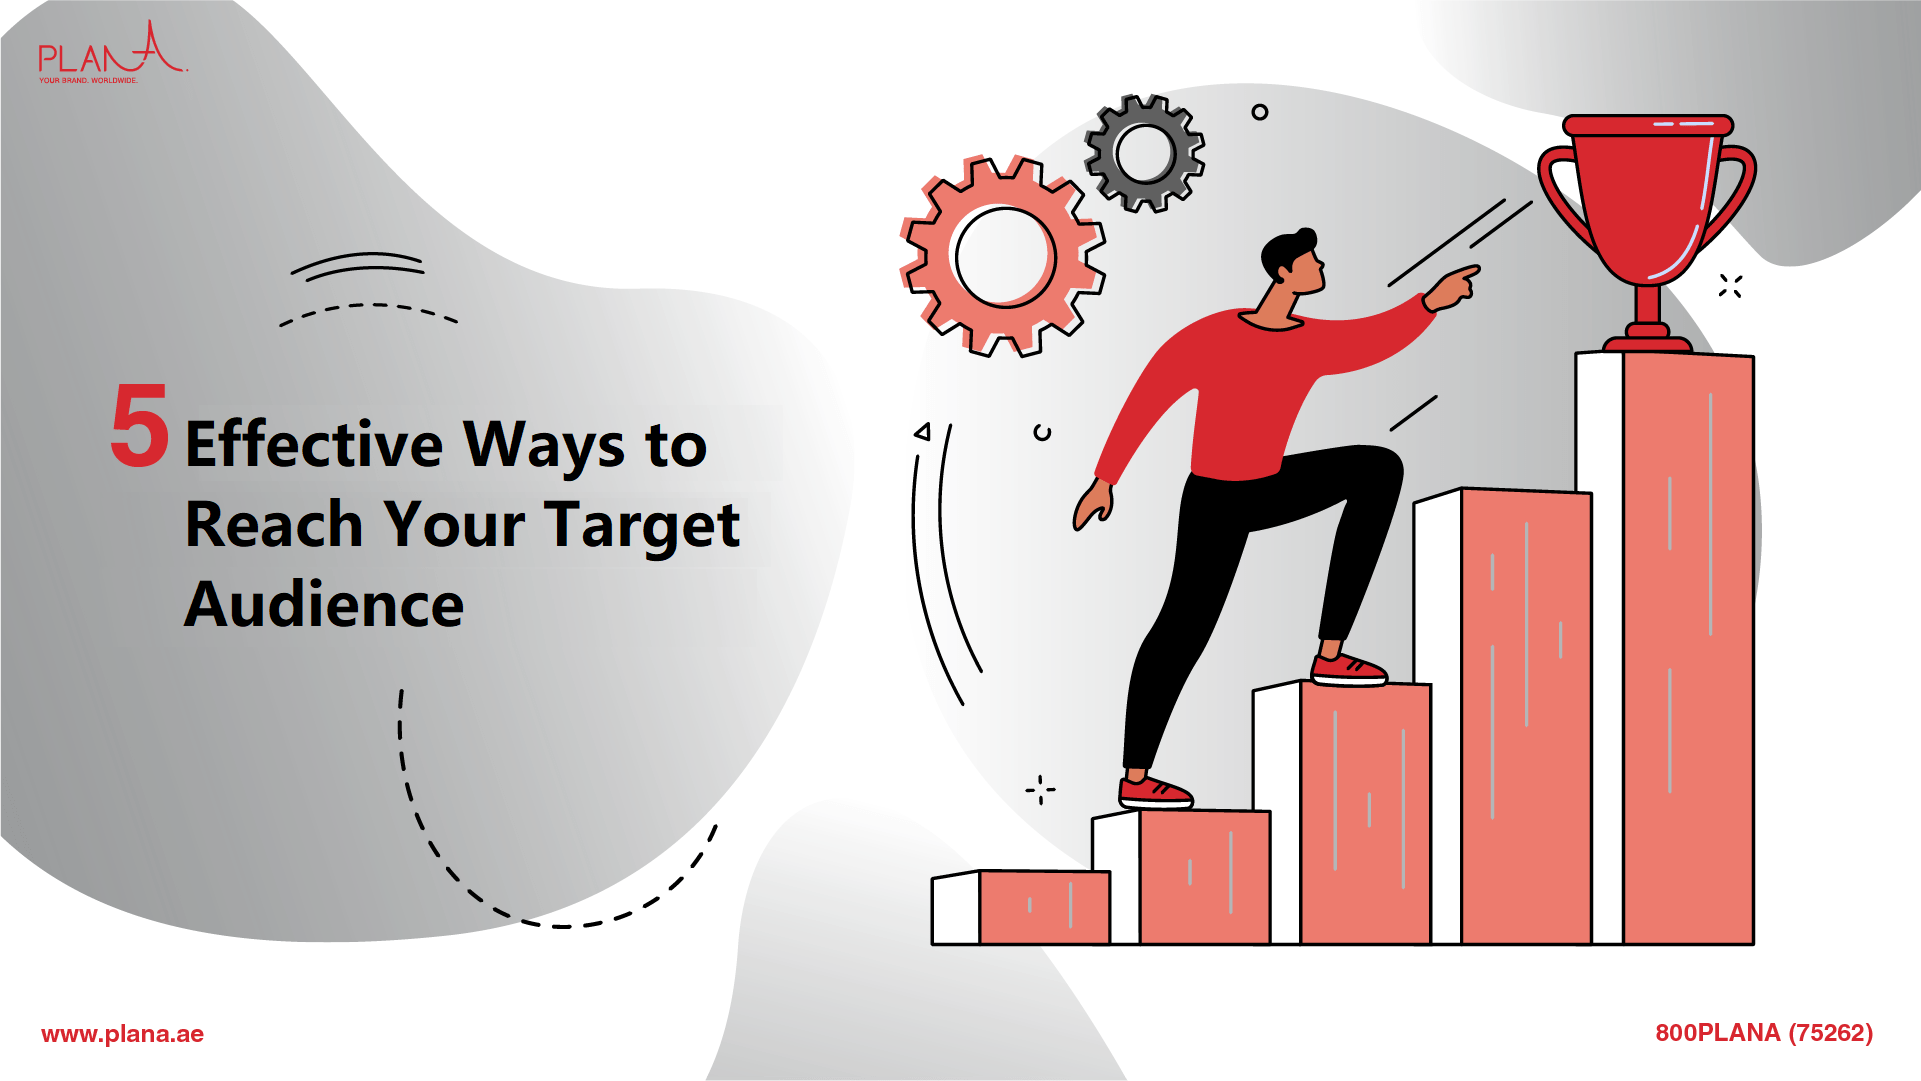 5 Effective Ways to Reach Your Target Audience